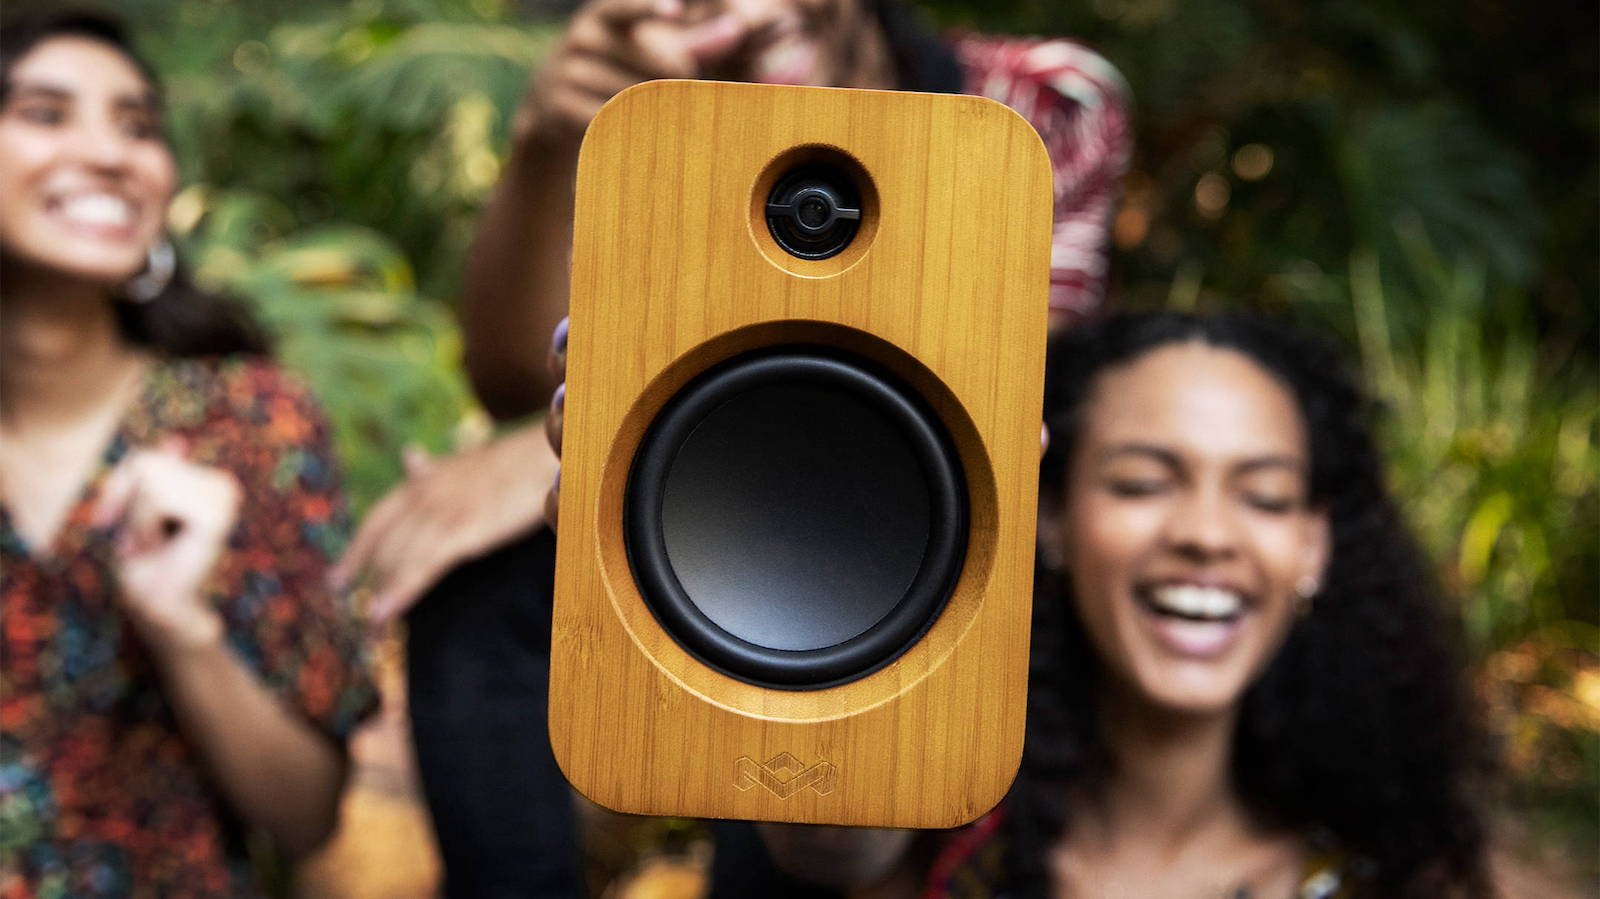 House of Marley Get Together Duo Bluetooth speakers have 3.5″ woofers and 1″ tweeters